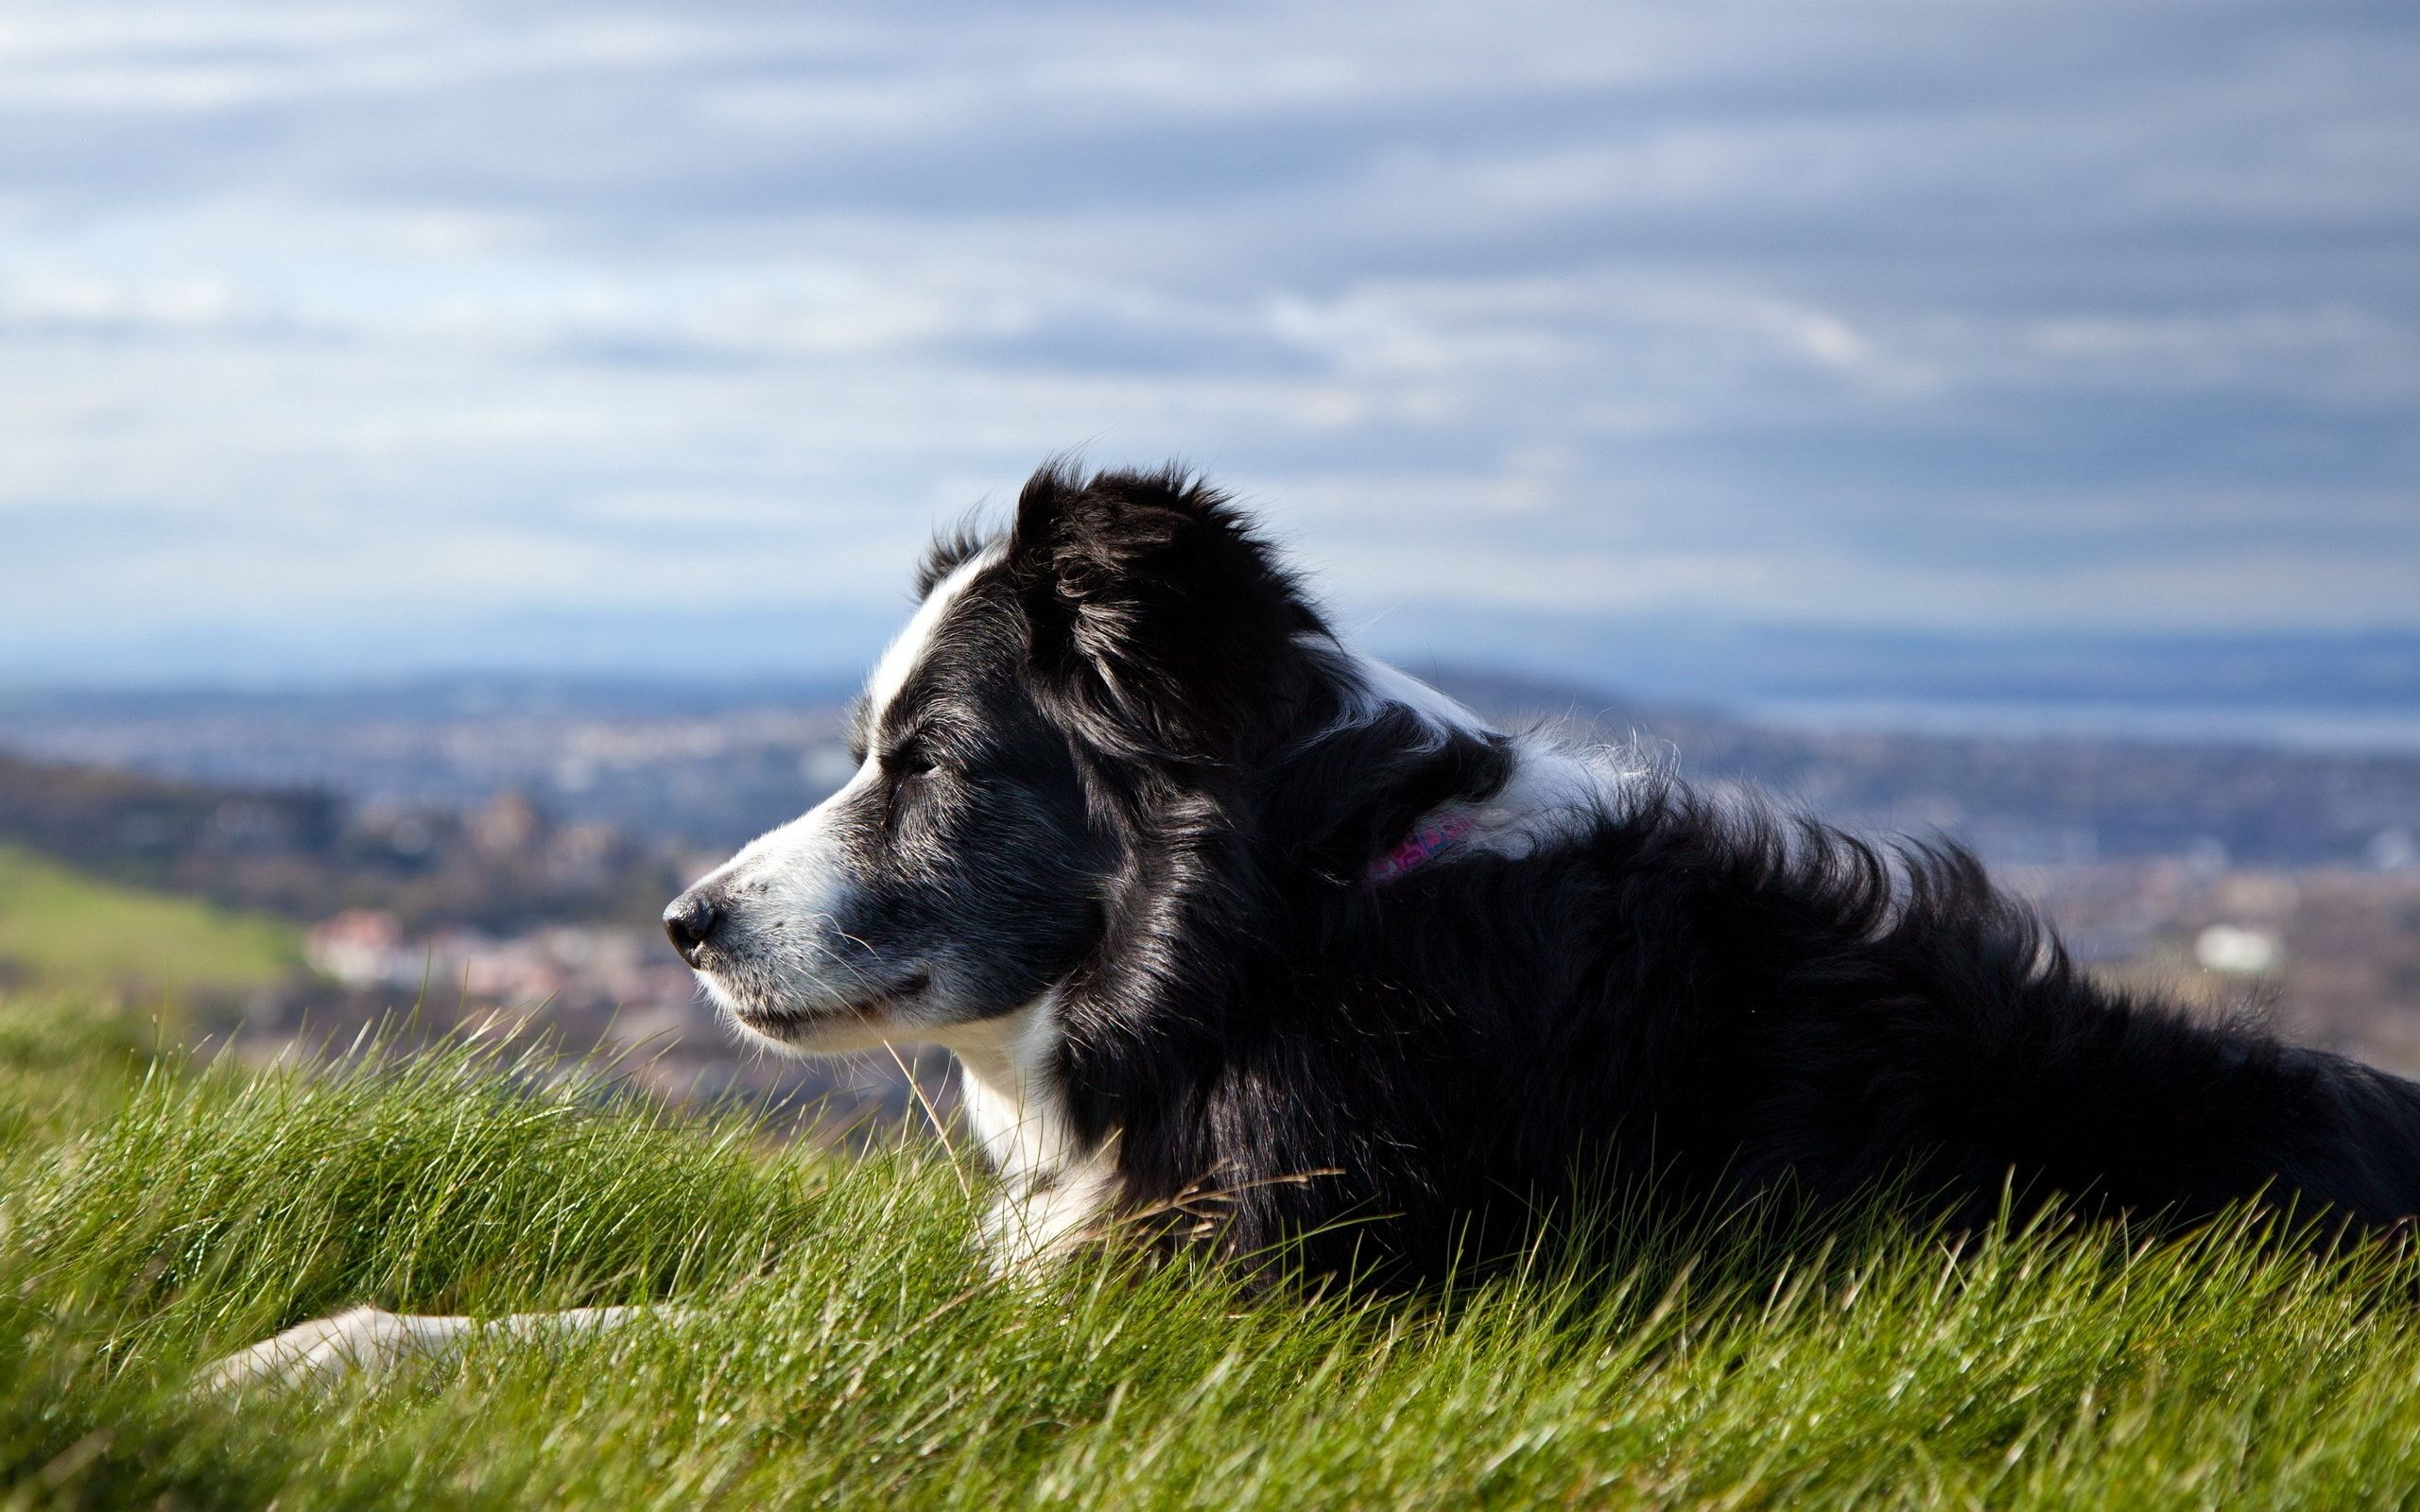 Border Collie Wallpapers Android Apps on Google Play